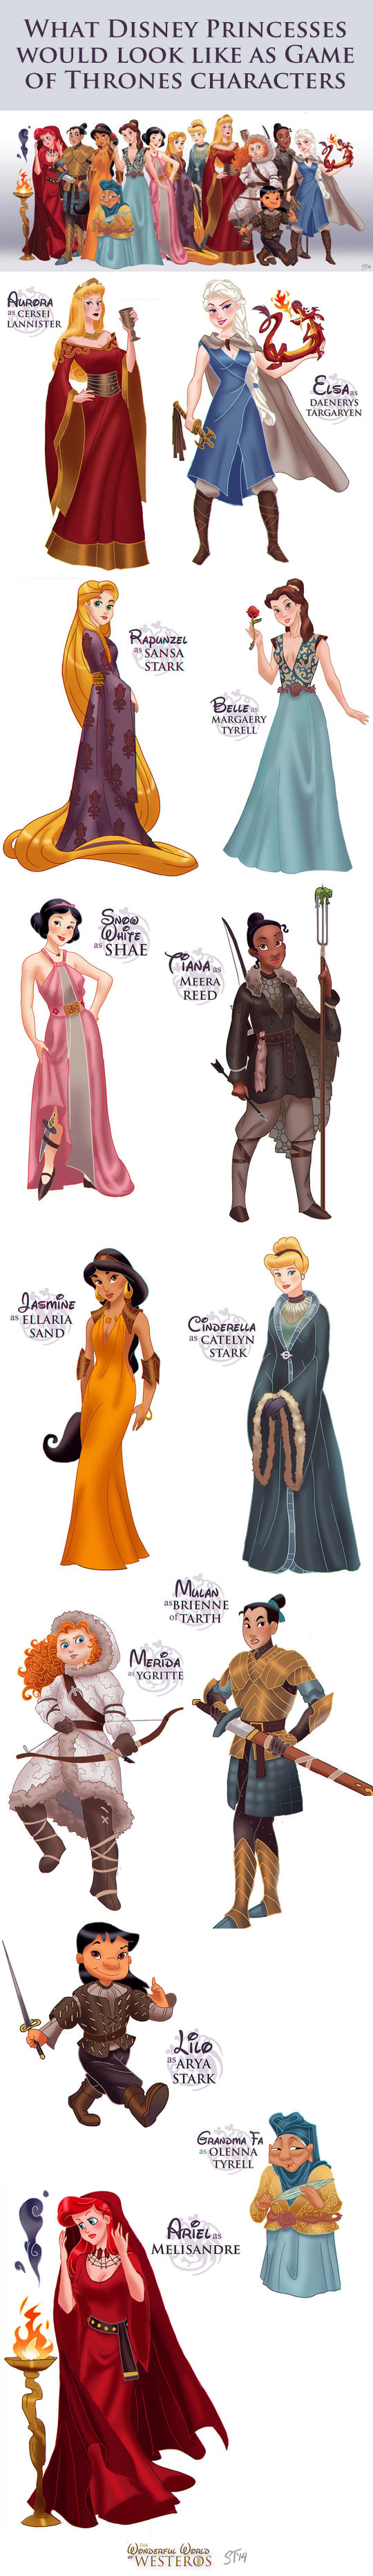 The Disney version of Game of Thrones…